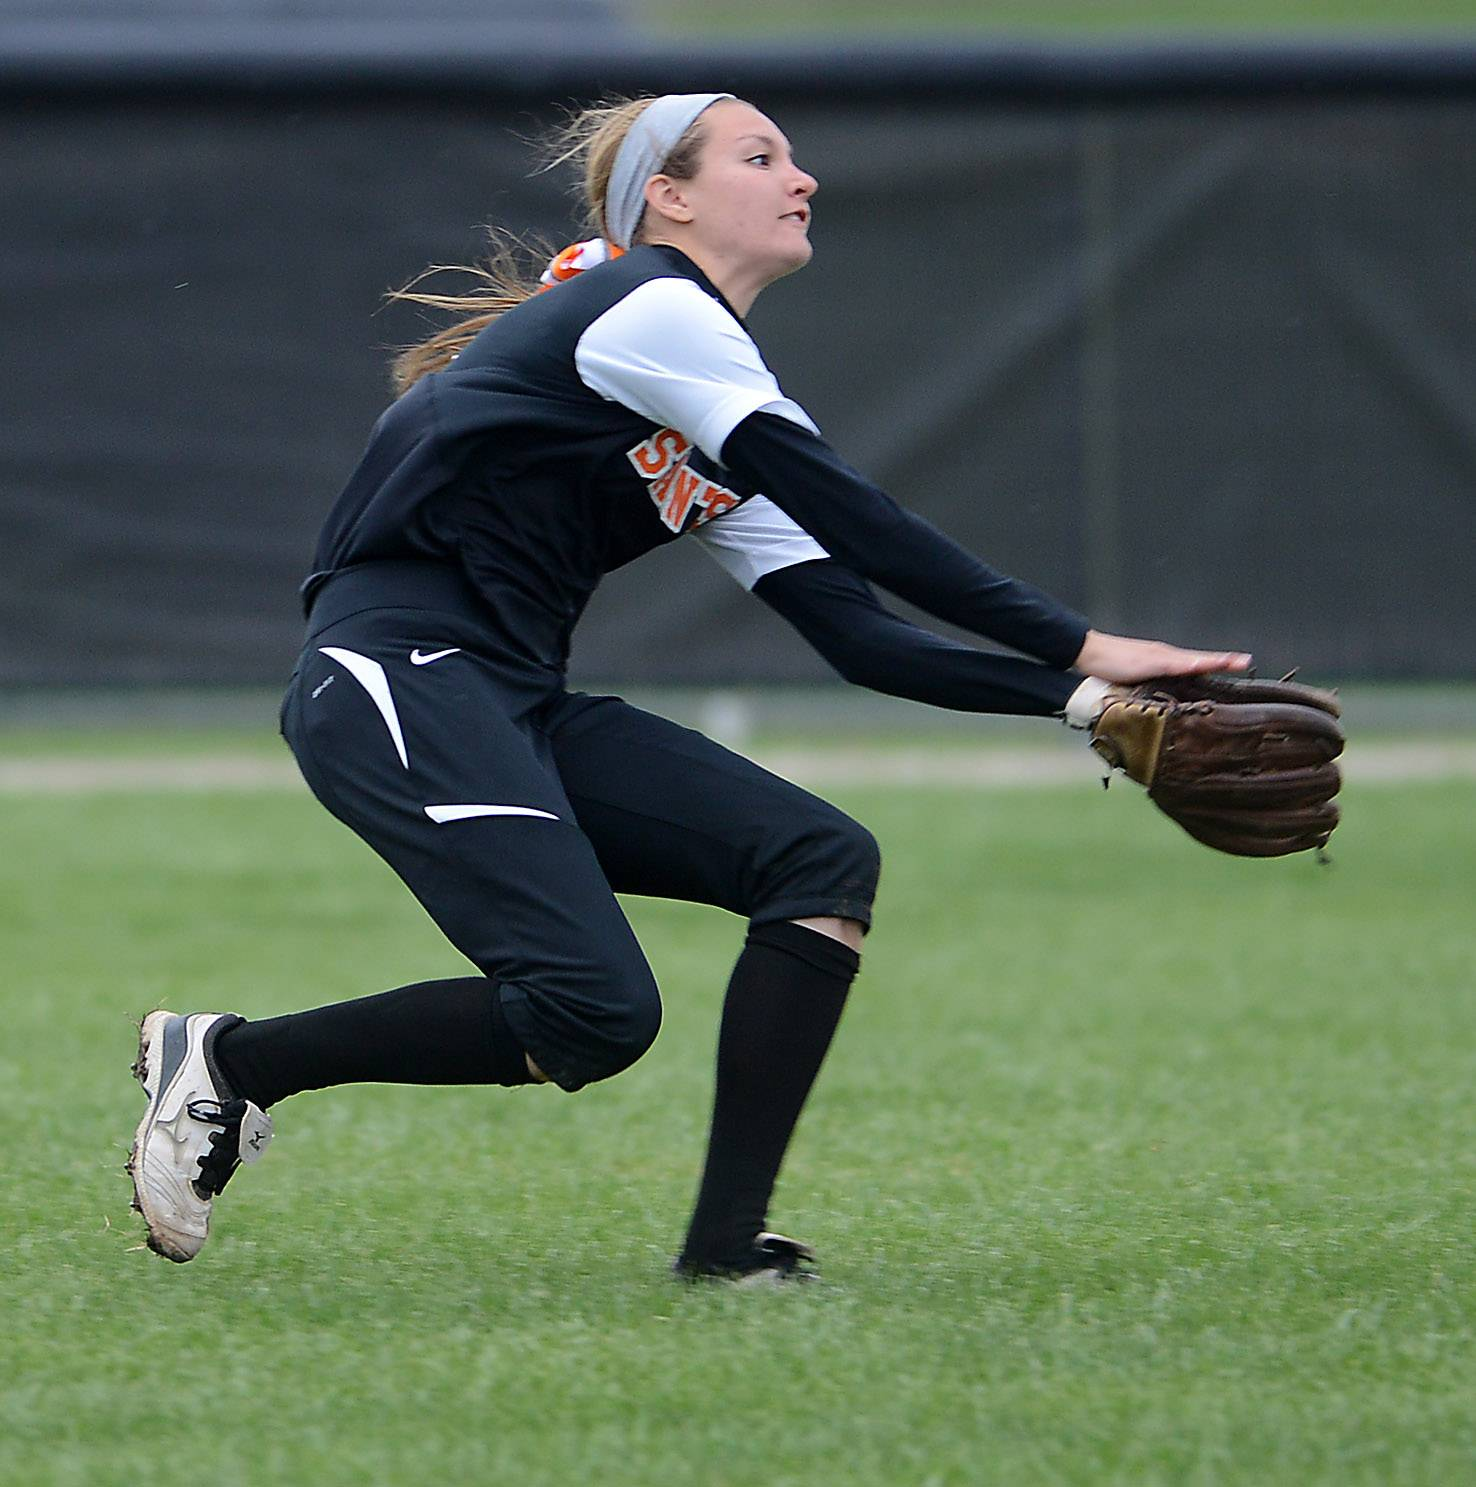 St. Charles East's Tess Hupe makes a running catch from center field during Tuesday's game in St. Charles.